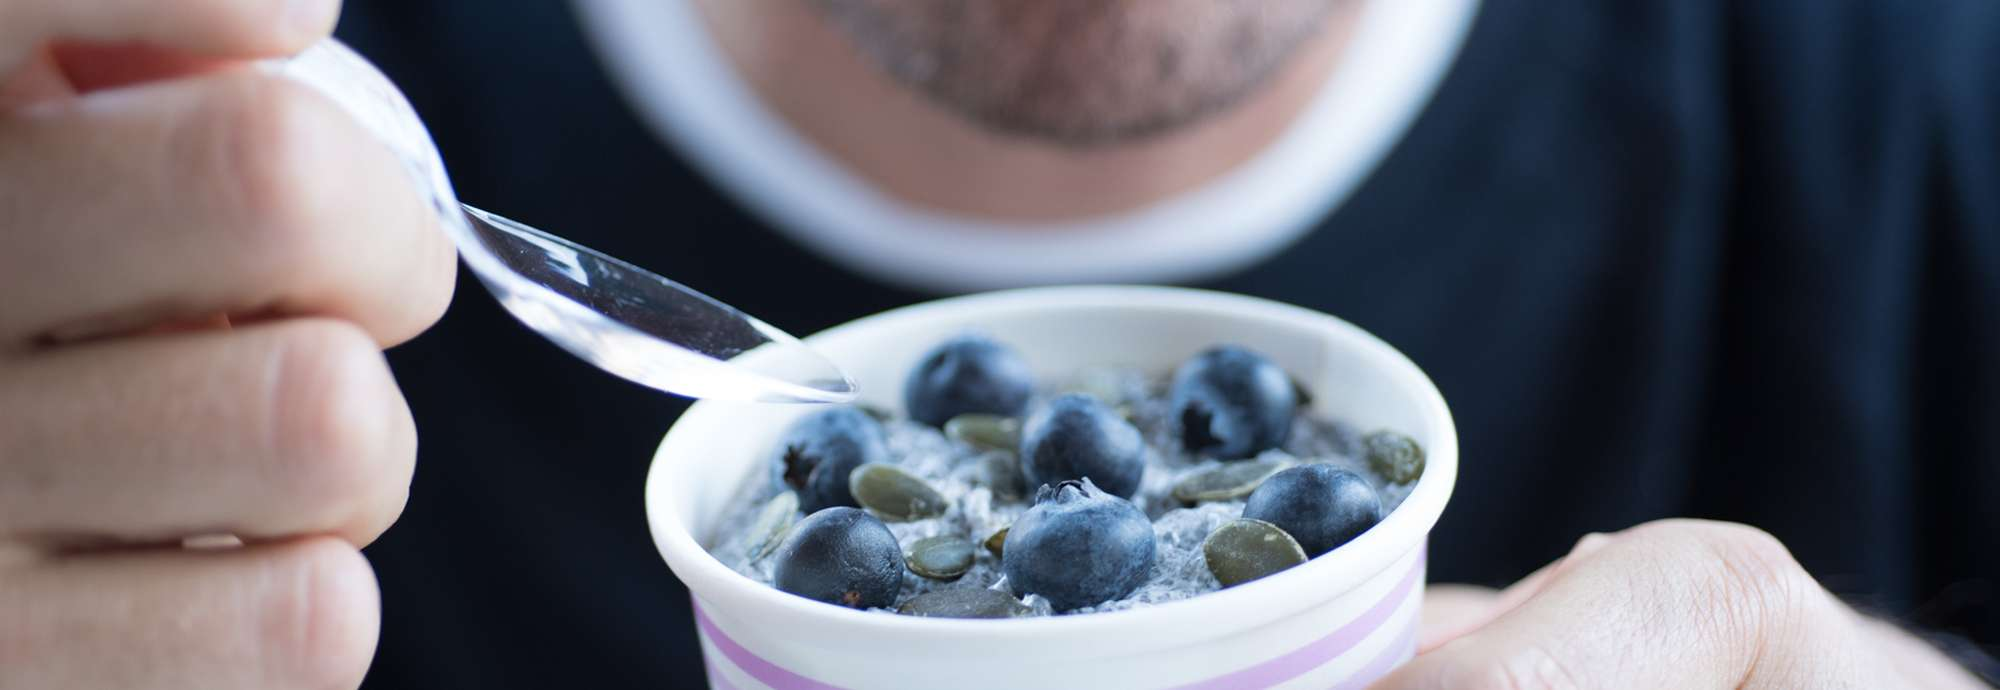 cojean blueberry porridge